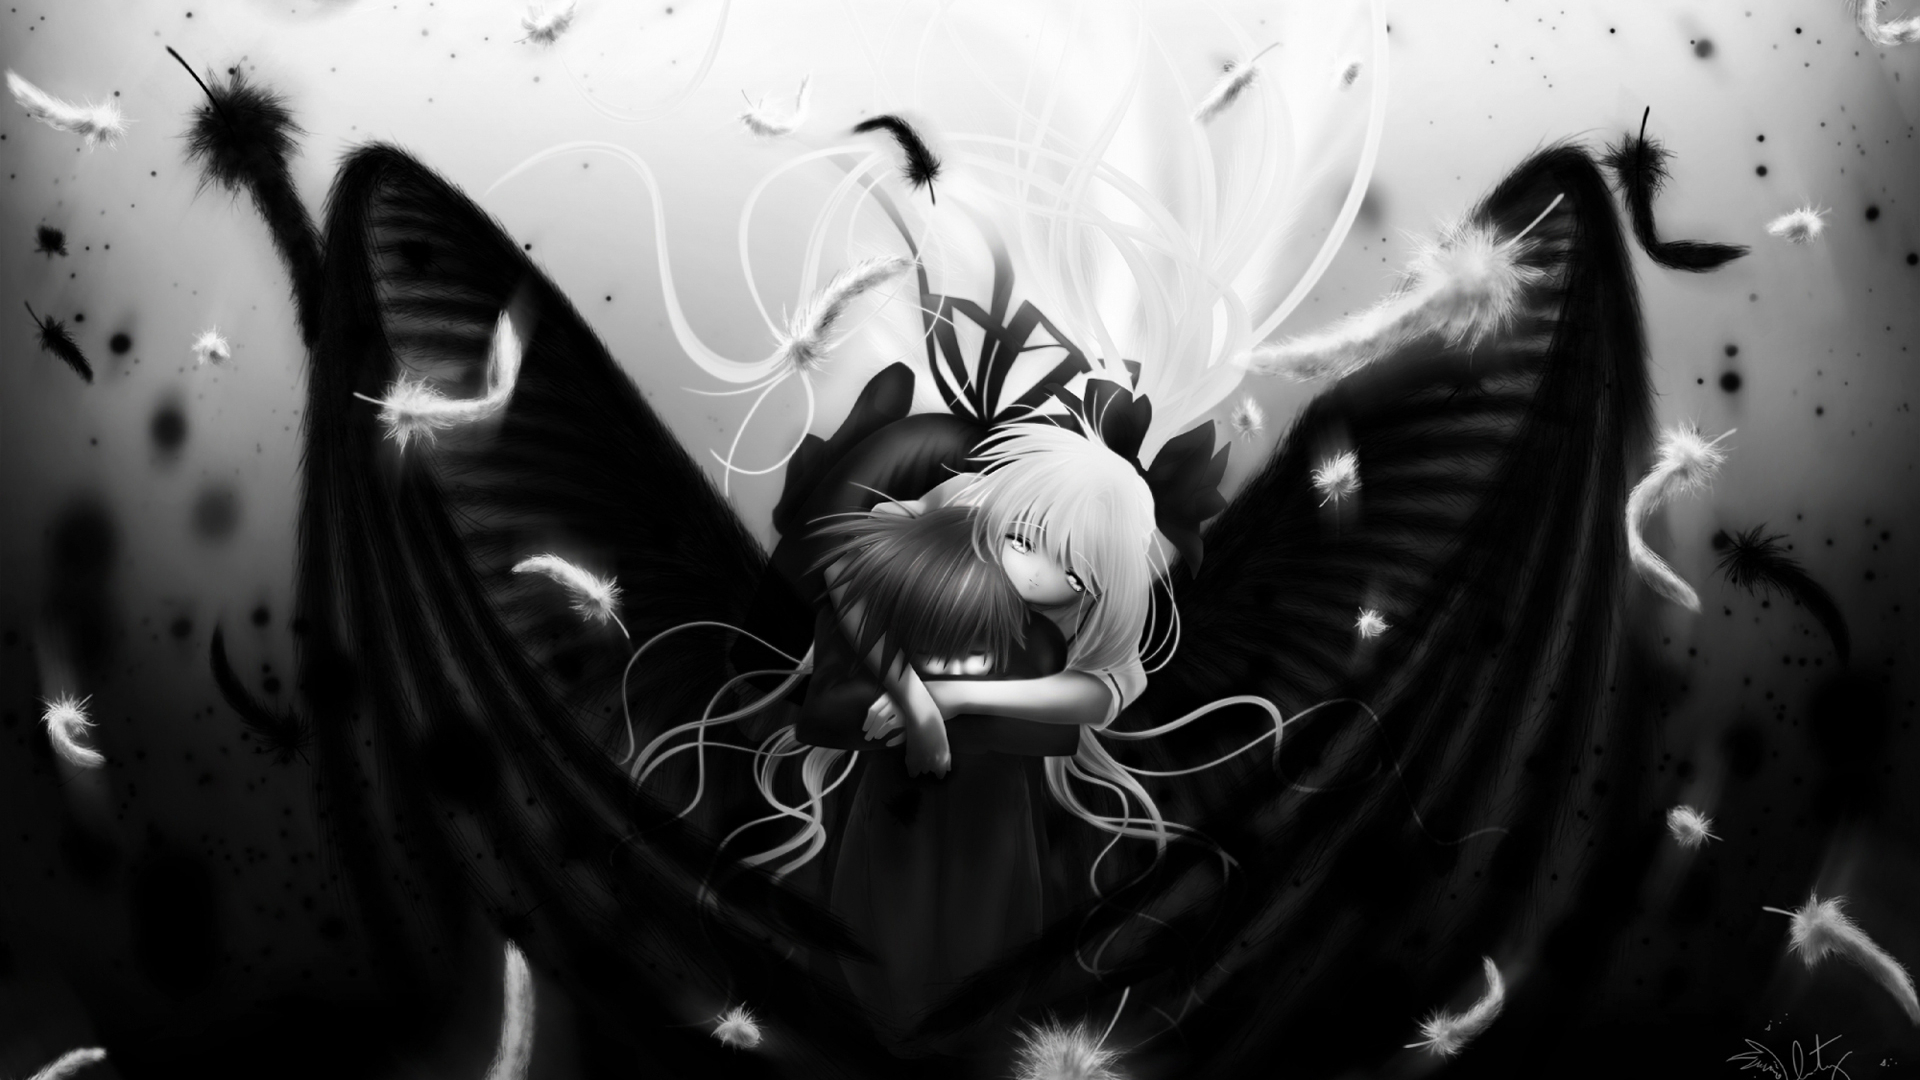 Free Download Anime Girl In Black And White Wallpapers Hd